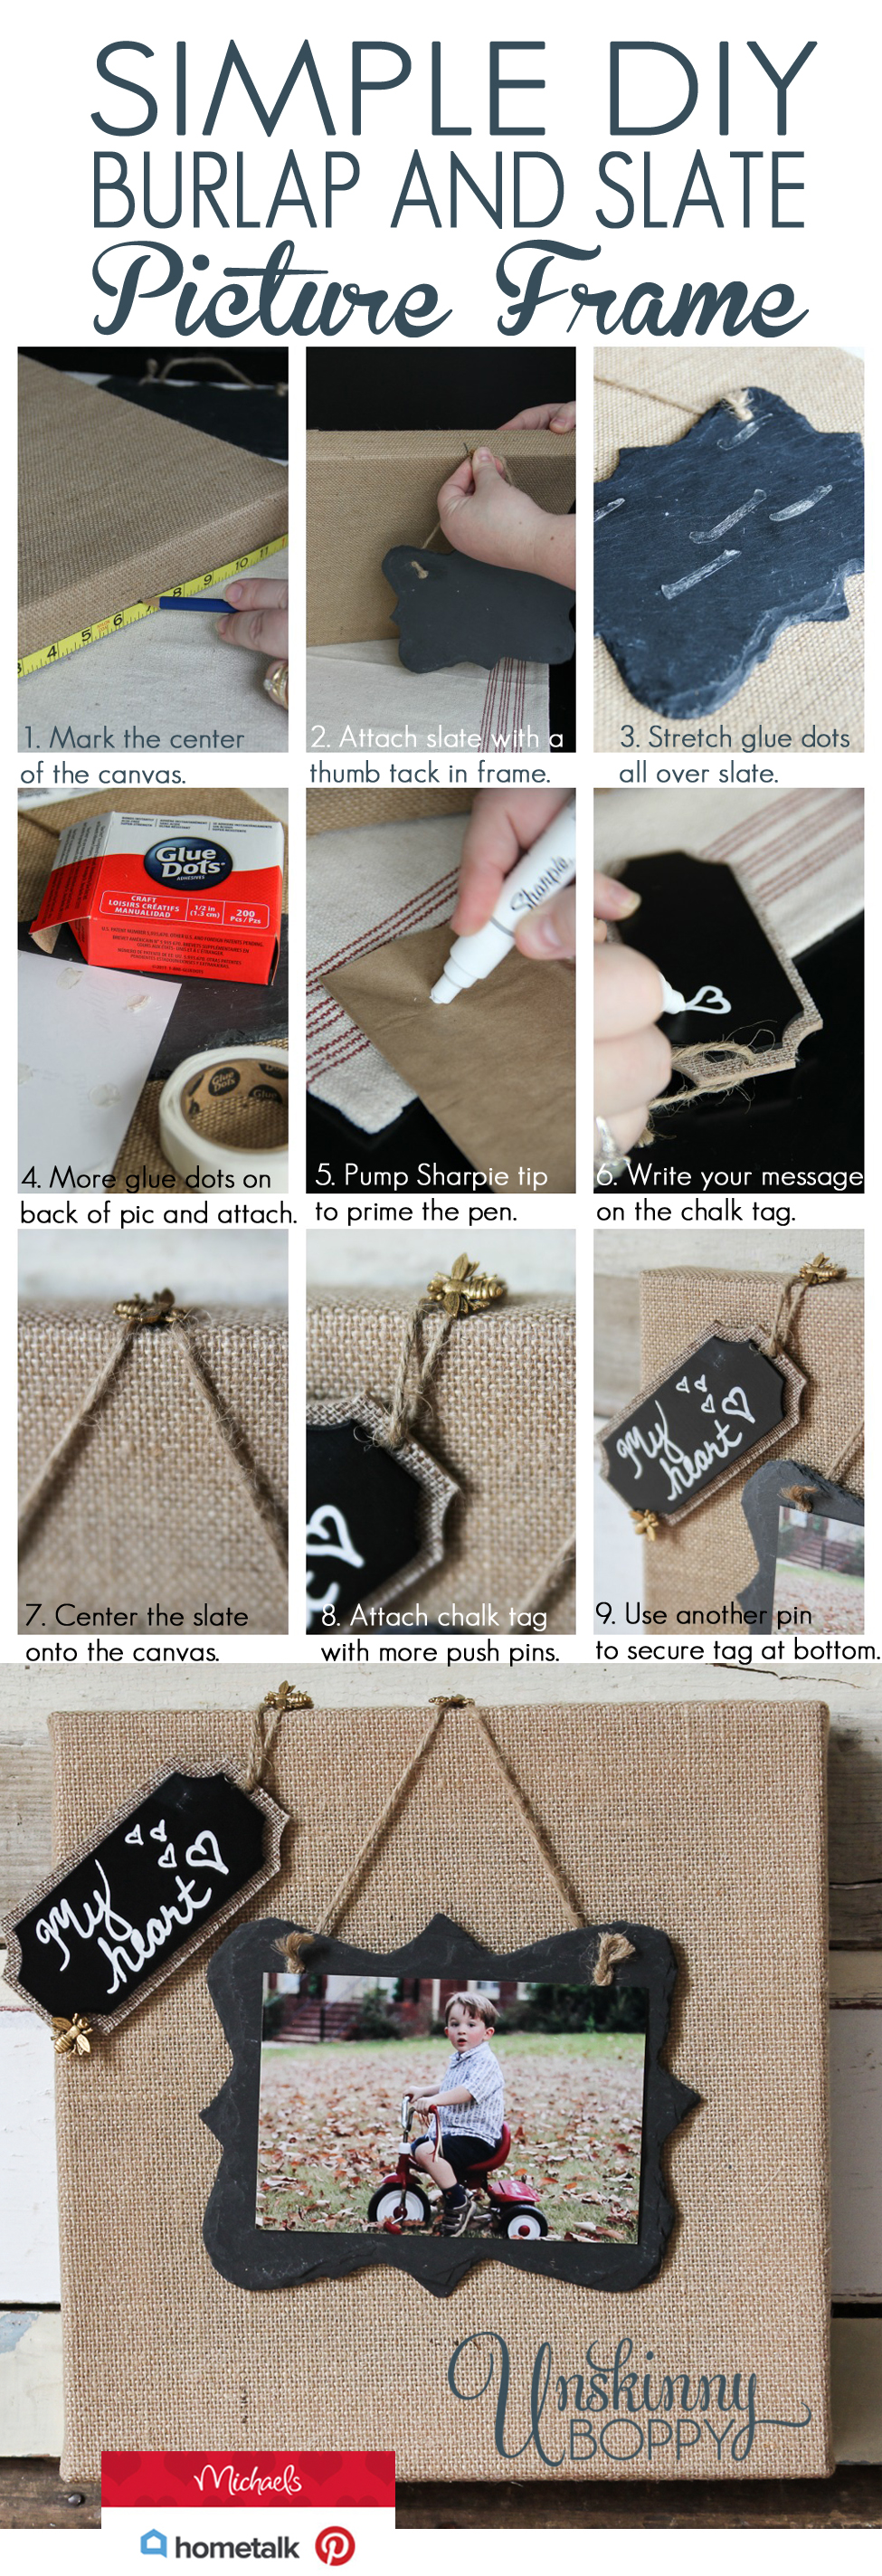 Simple Burlap and Slate Picture Frame